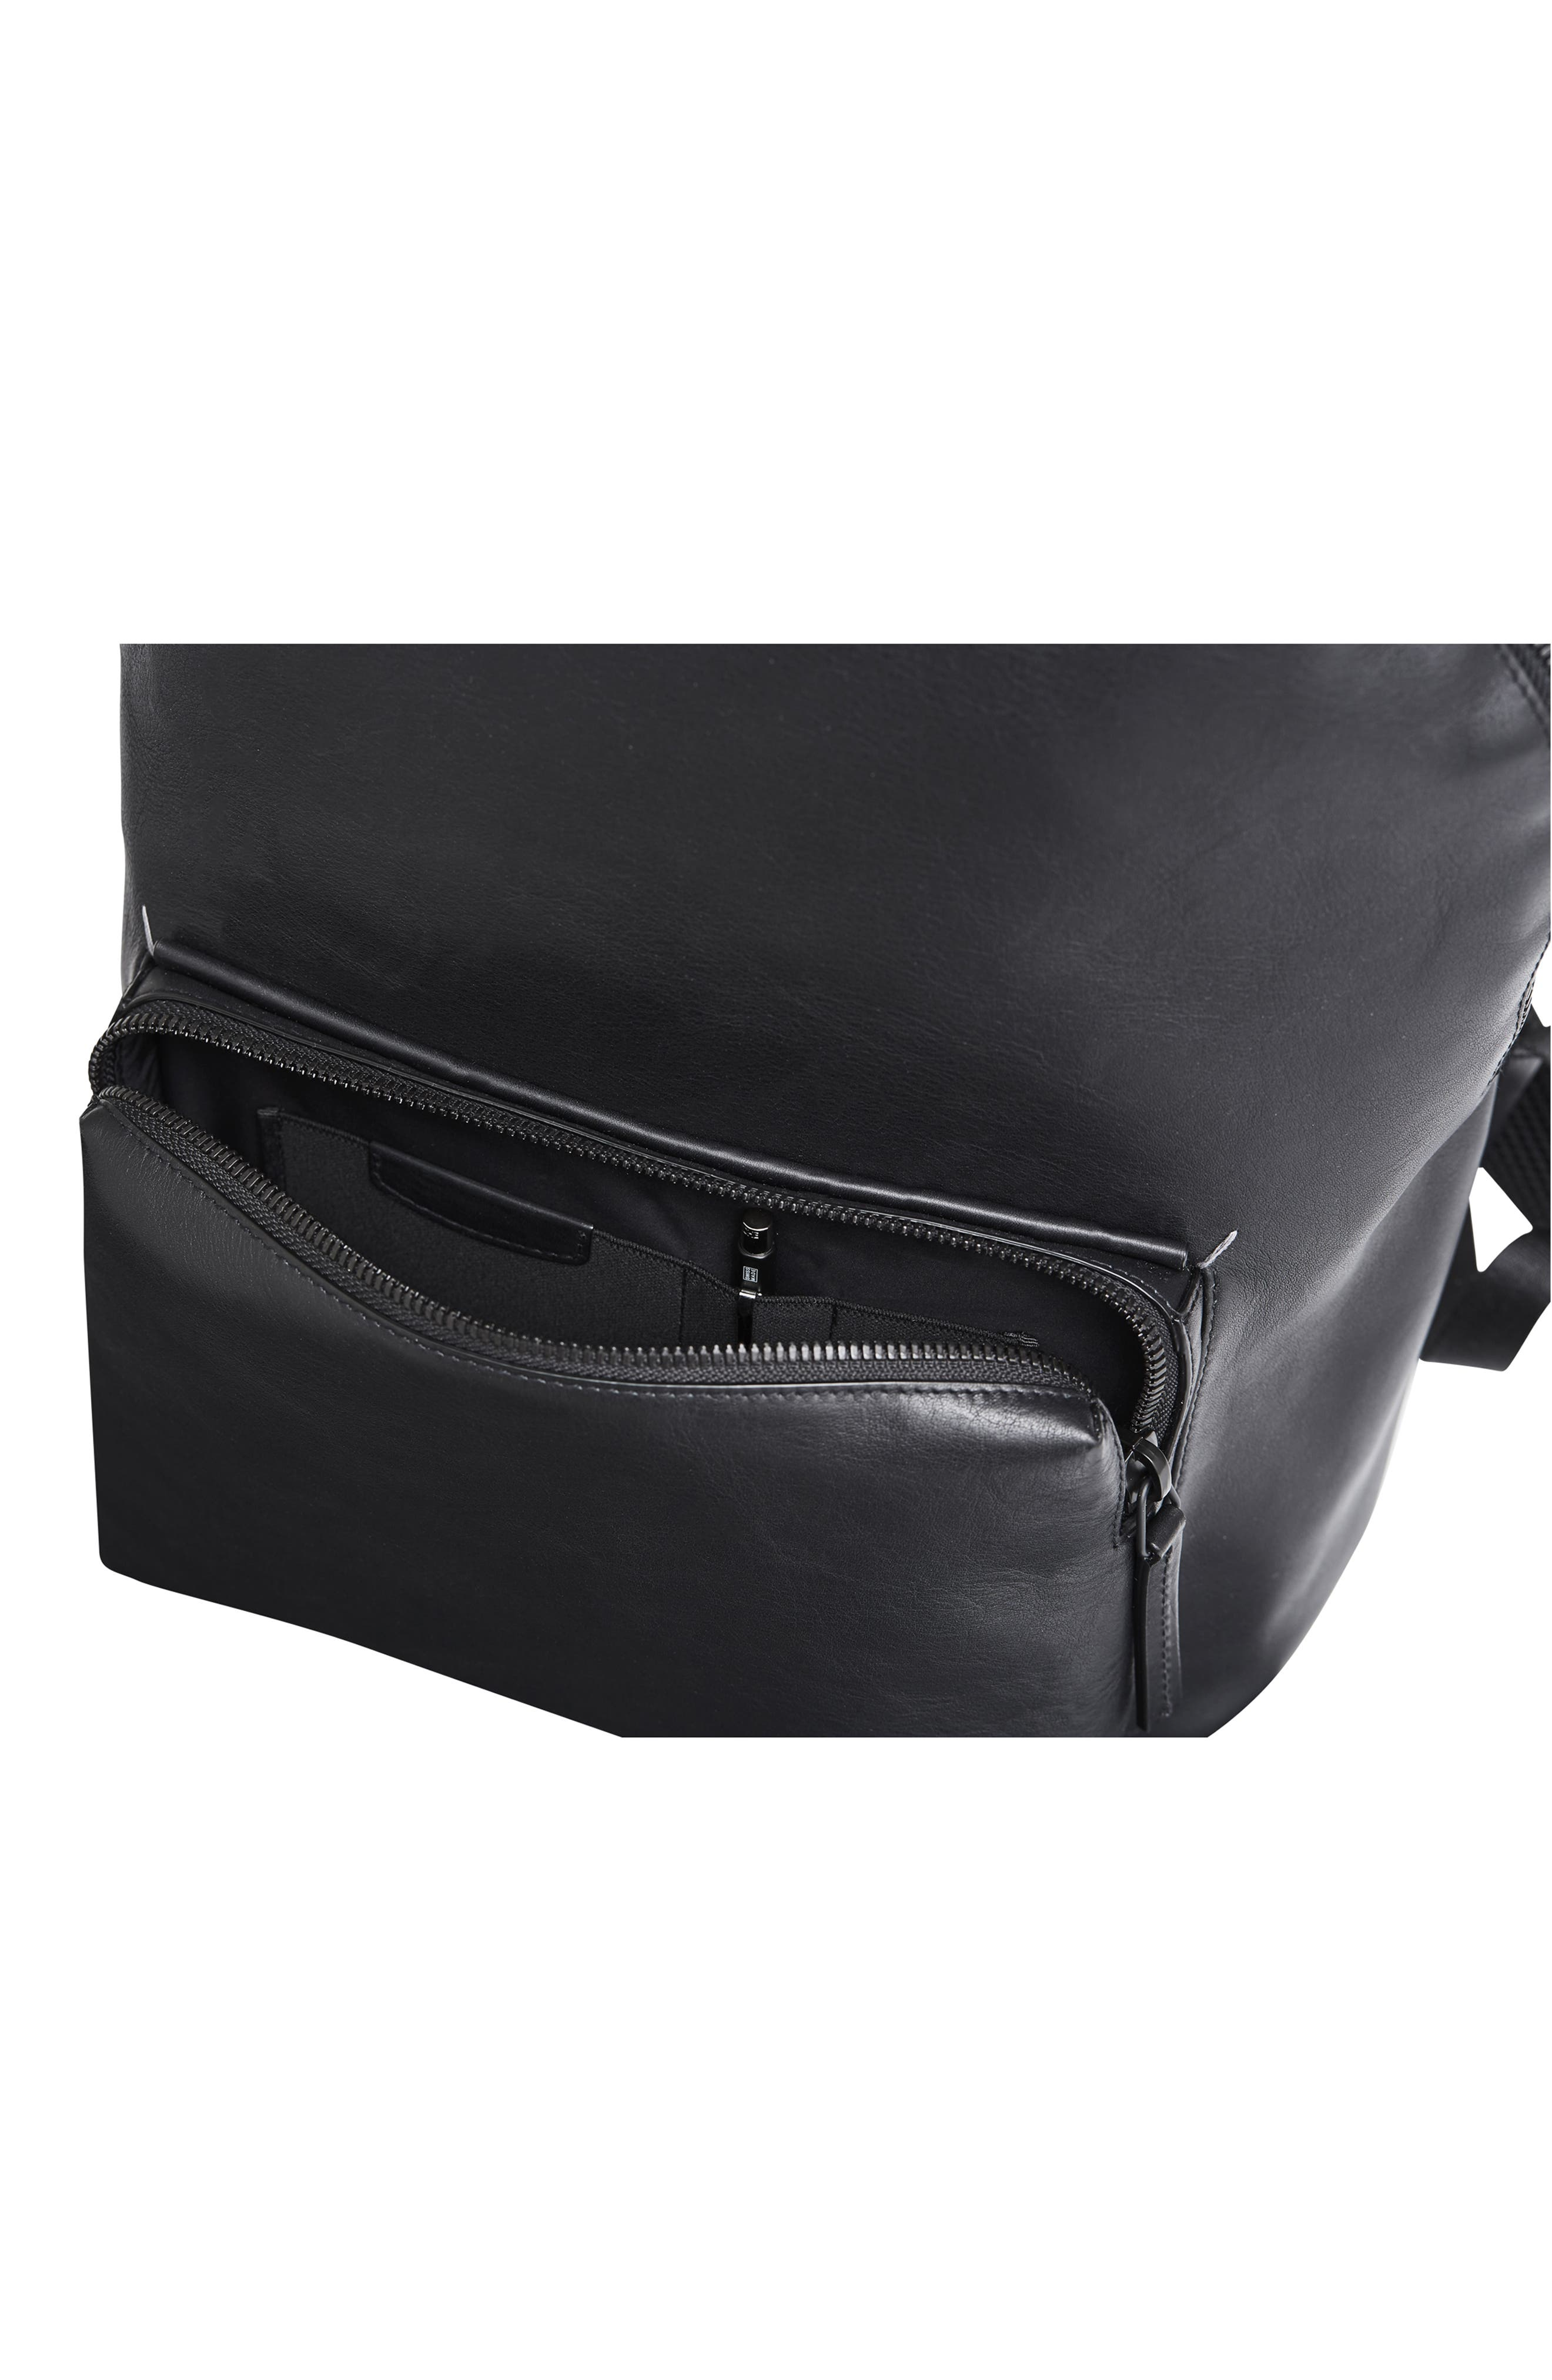 Leather Backpack,                             Alternate thumbnail 9, color,                             BLACK LEATHER